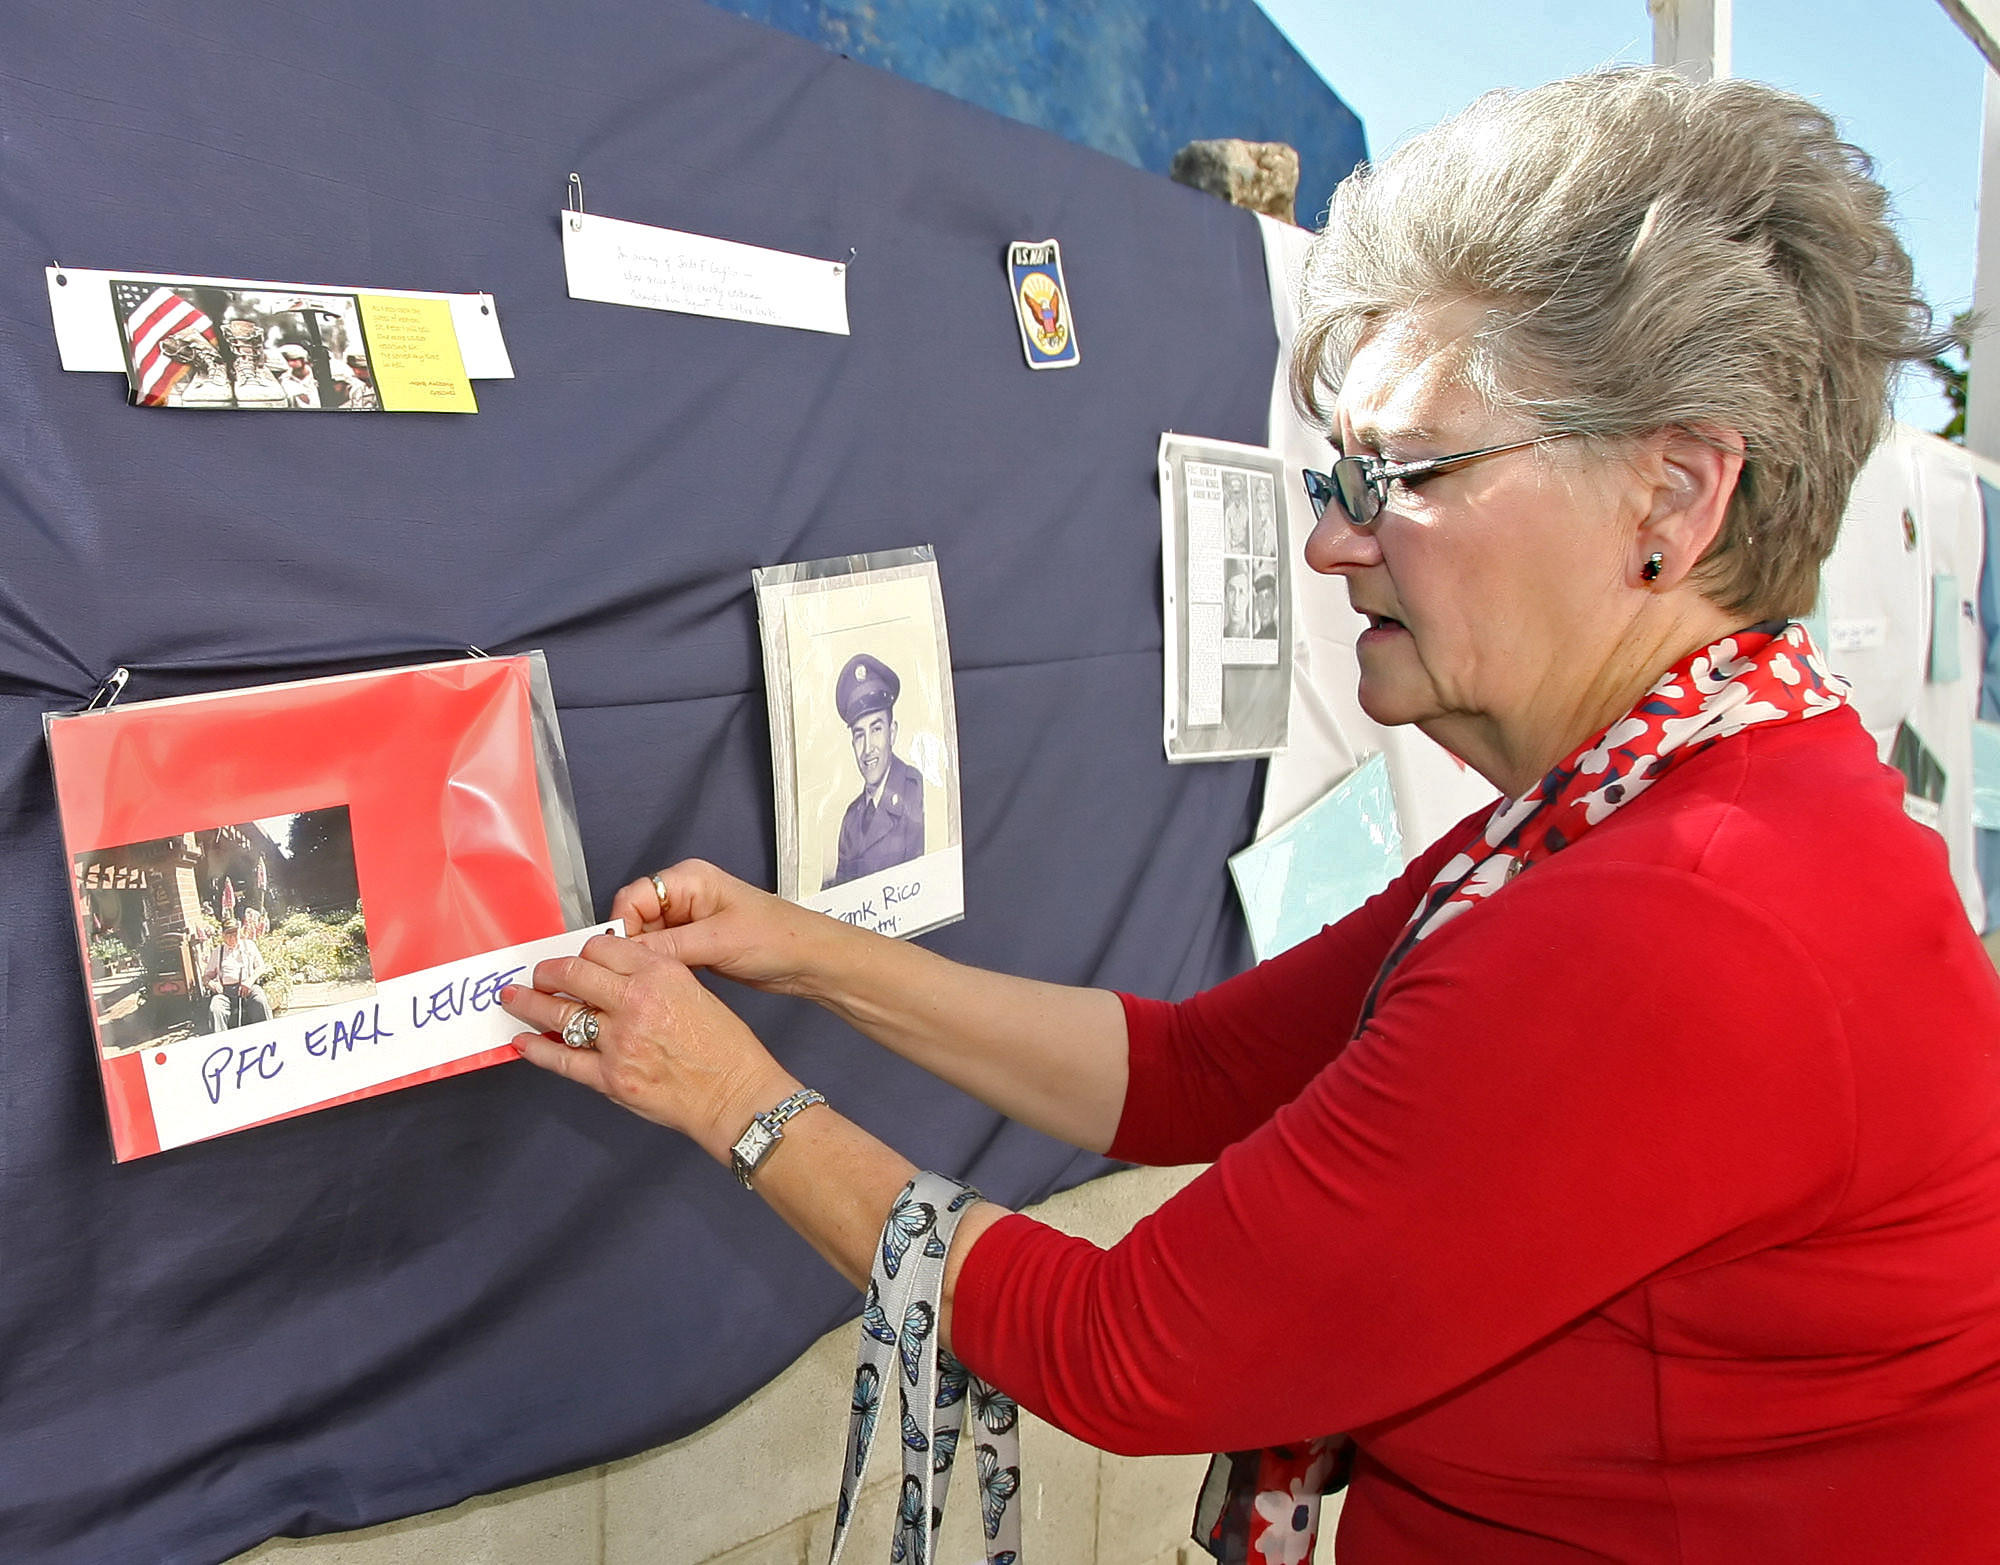 Camille Levee, former executive director of Glendale Healthy Kids who left to take a position in Arizona in 2012, has returned to the tri-city area as executive director of Women at Work in Pasadena. She is pictured putting a photo of her husband on the remembrance wall during the First Annual Veteran's Memorial Program at Wellness Works in Glendale on Saturday, May 29, 2010.